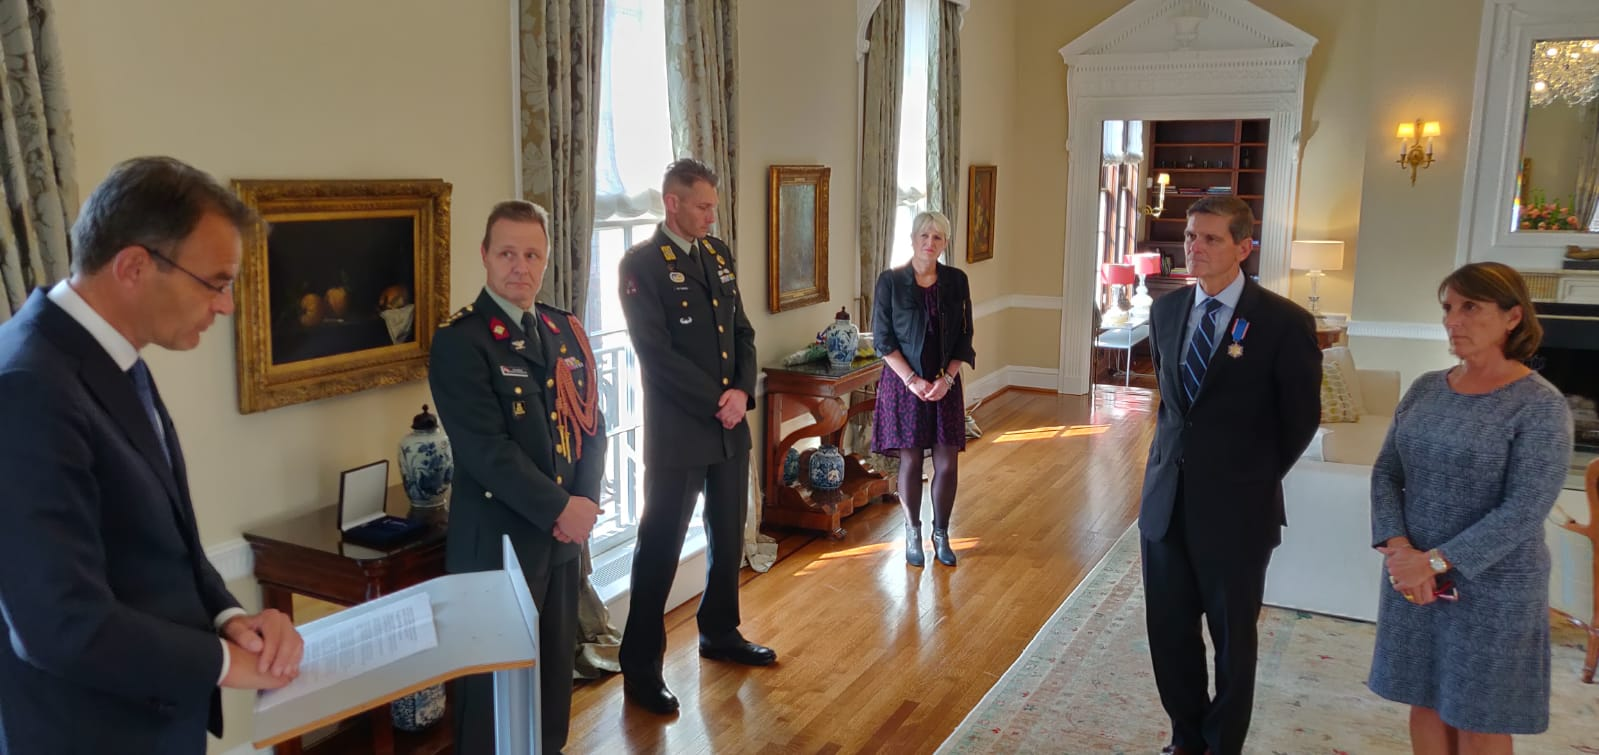 US general receives Netherlands Medal of Merit